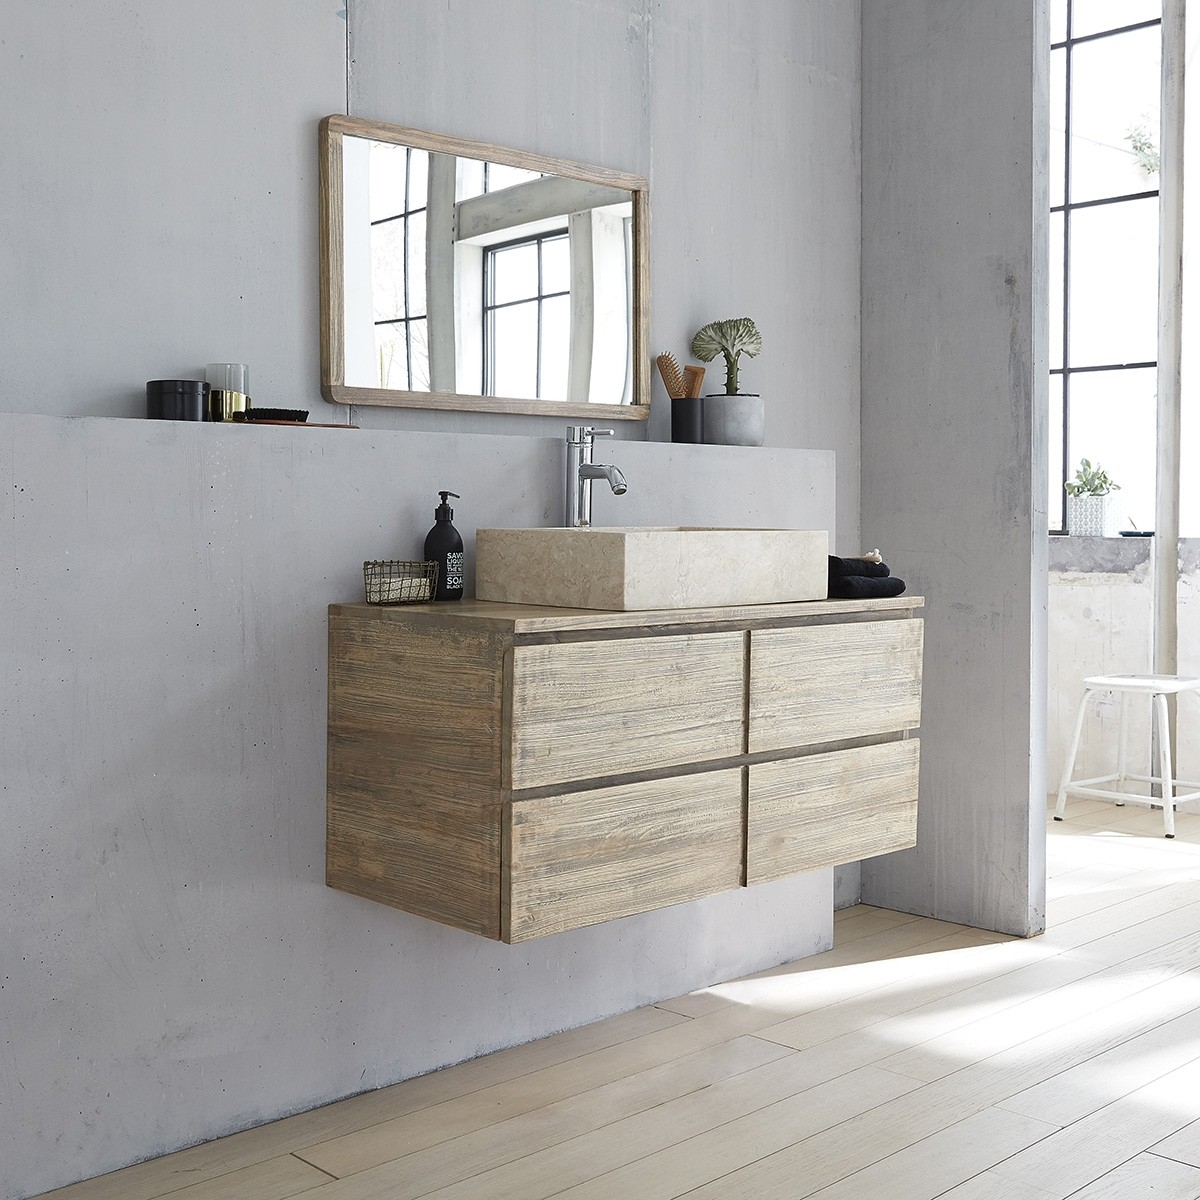 meuble de salle de bain suspendu en bois d 39 h v a 100 bois dessus bois dessous. Black Bedroom Furniture Sets. Home Design Ideas